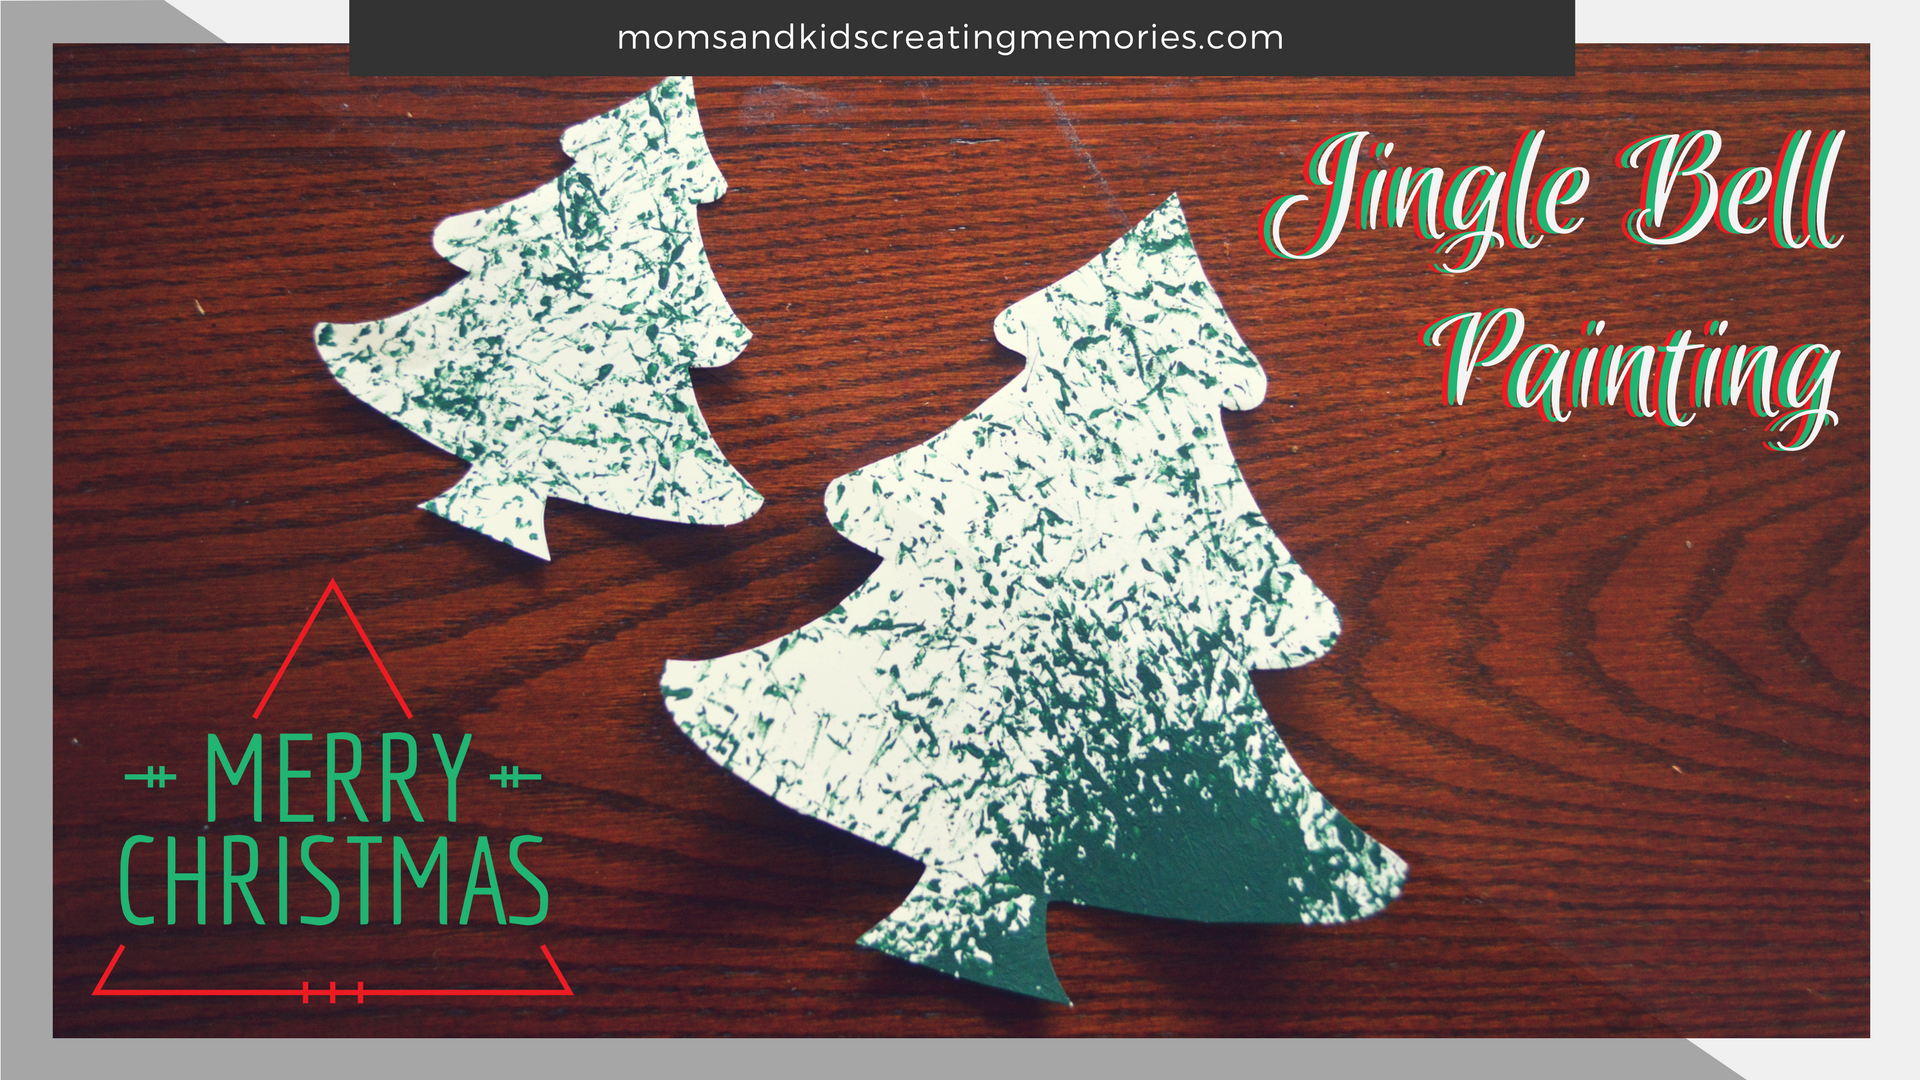 Jingle Bells Painted Tree - this is an easy and fun craft that will be different every time you try it and there are so many possibilities for what can be made with it. Try it with your kids and see if they enjoy it as much as my daughter did.